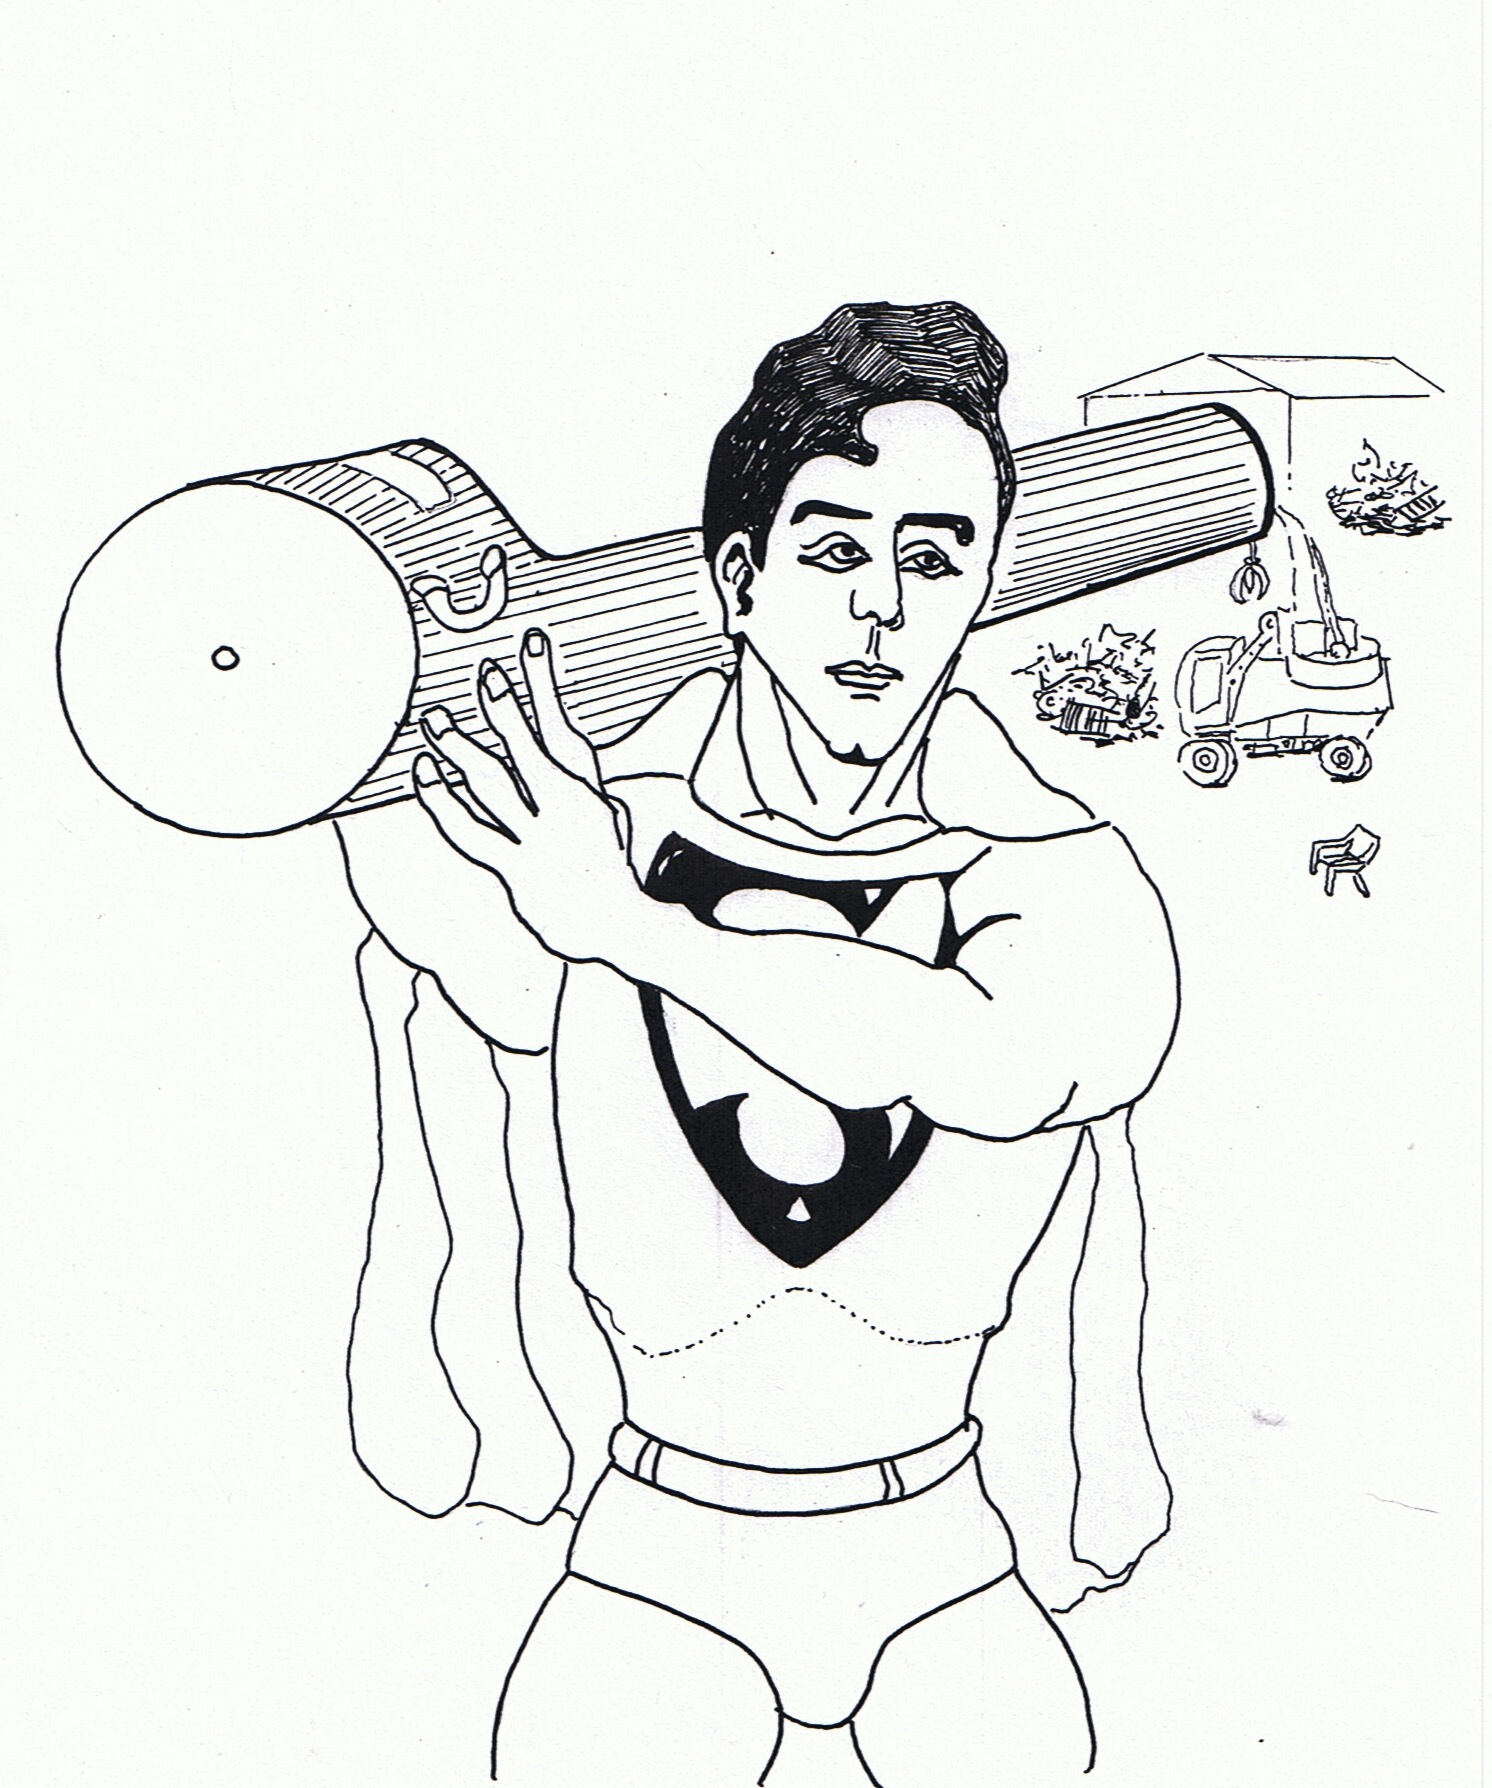 super boy coloring pages - photo#34